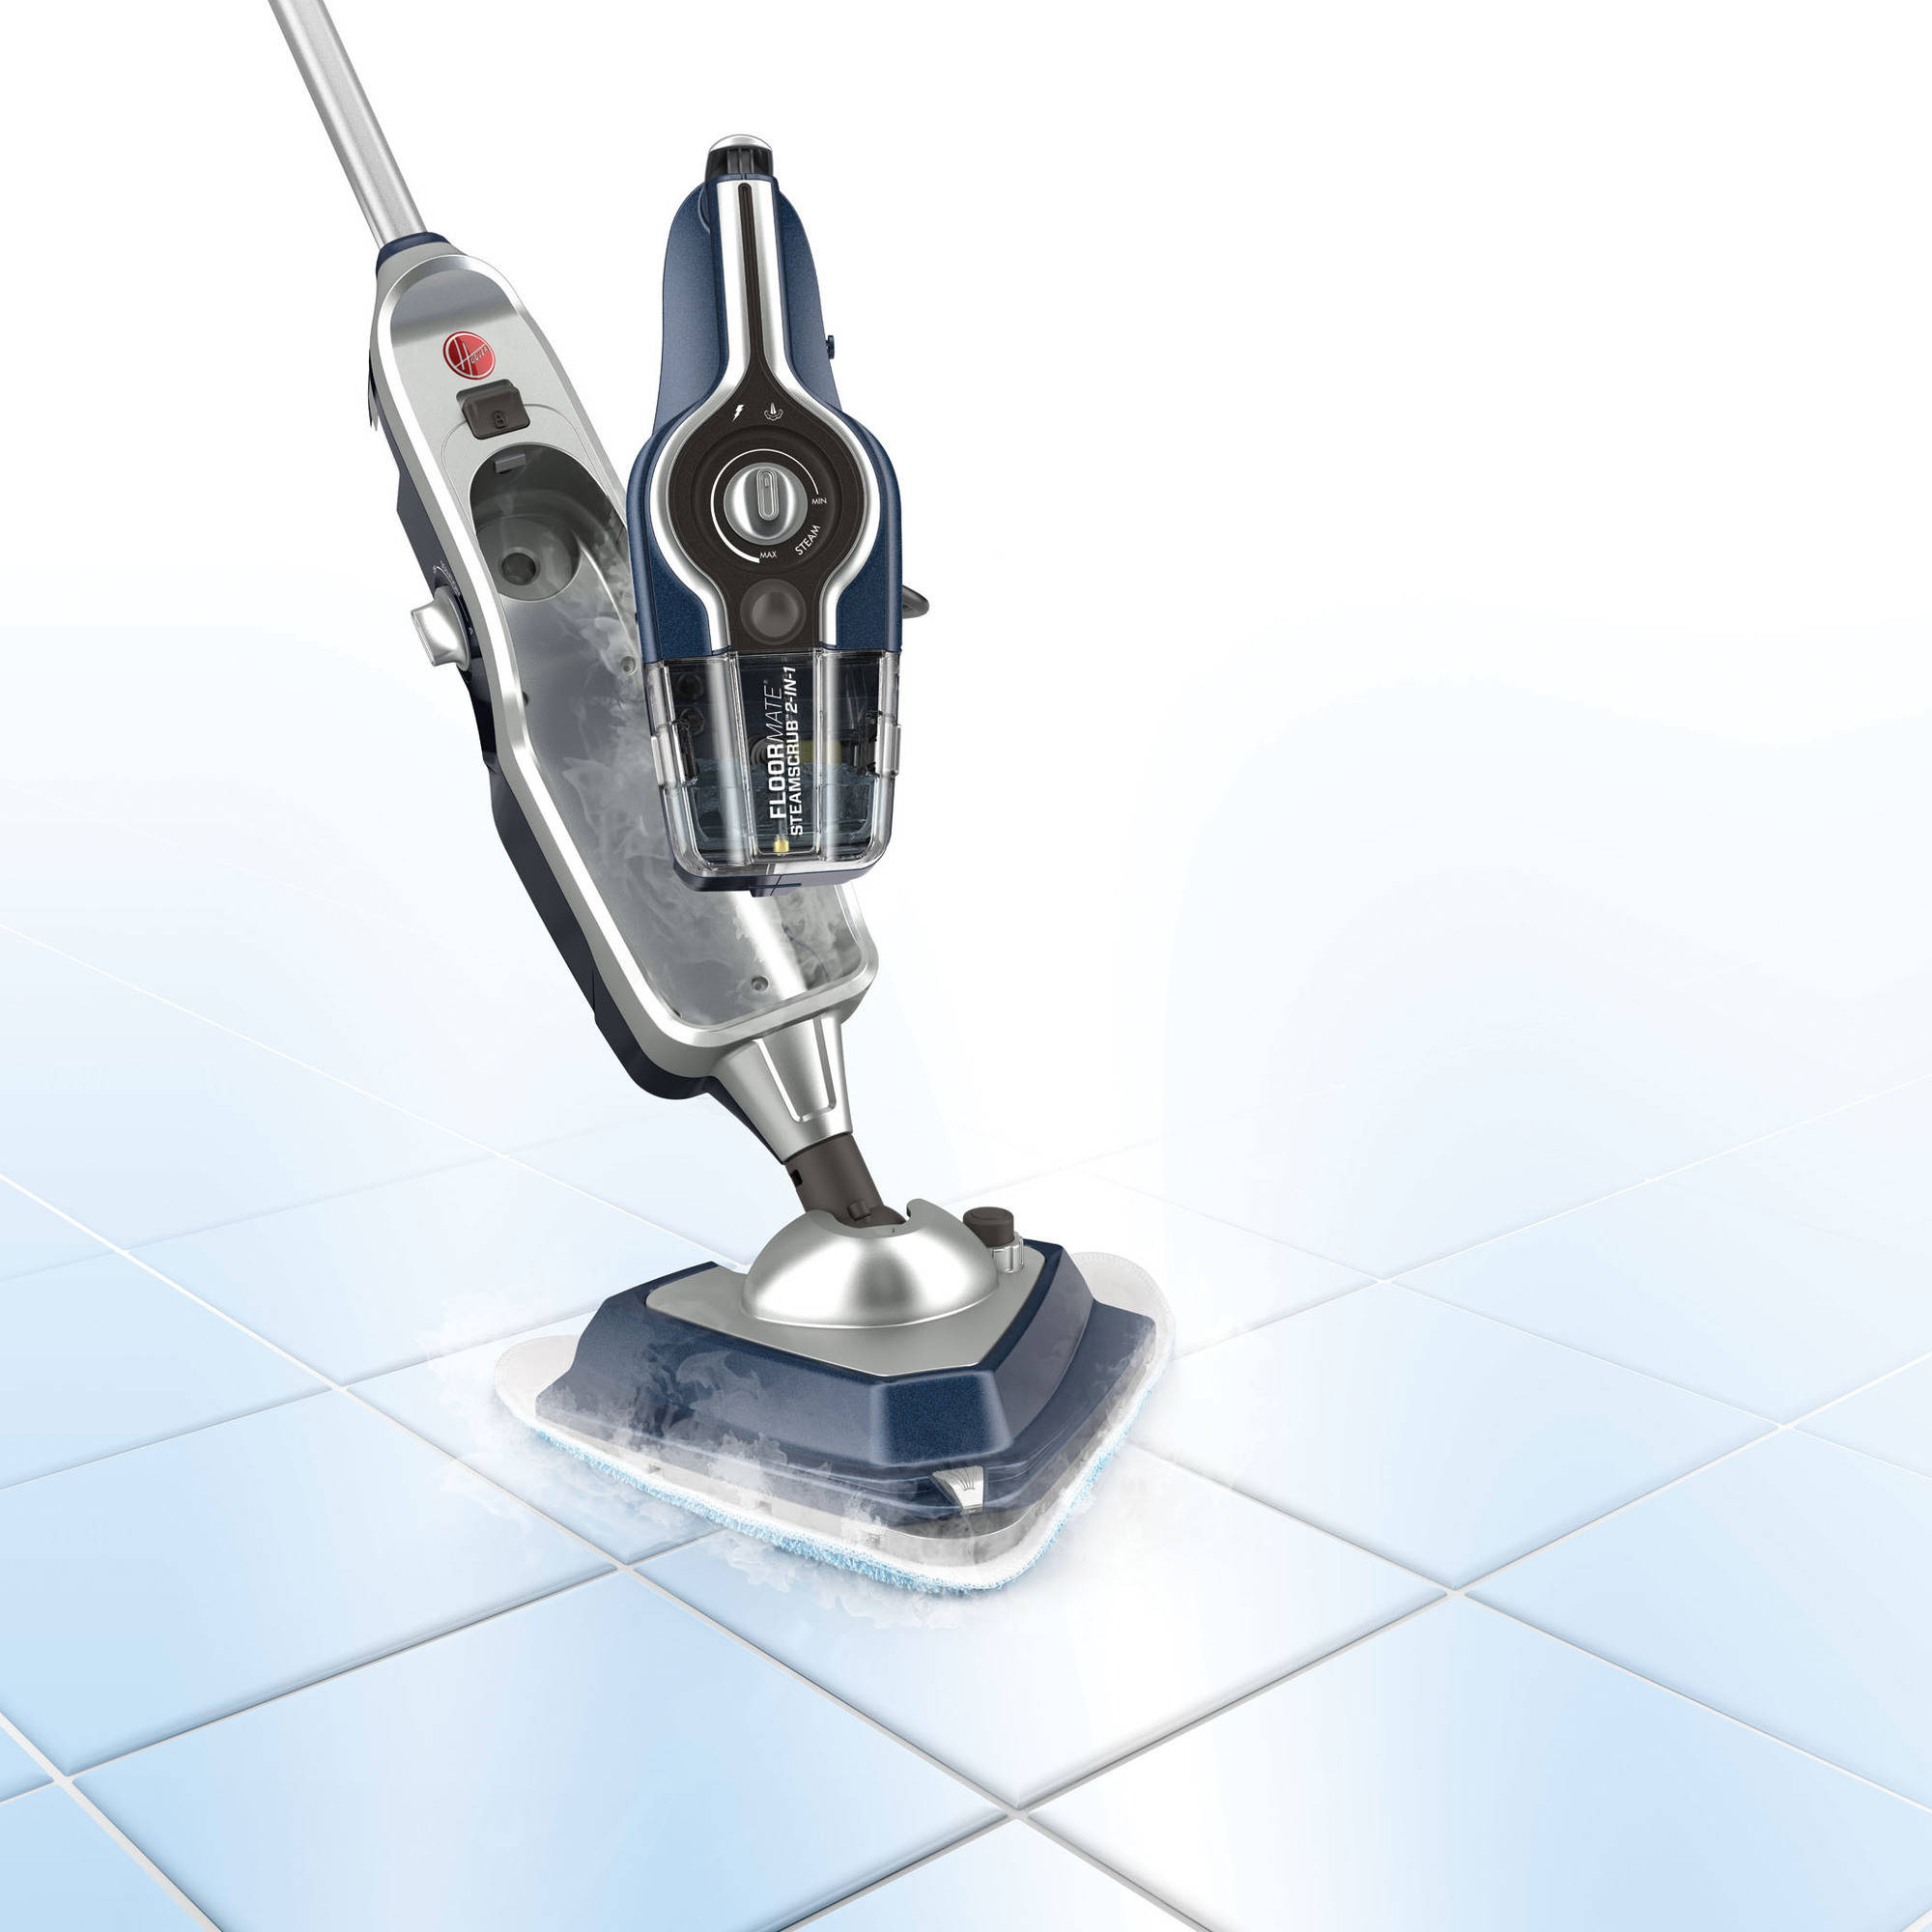 Hoover SteamScrub 2-In-1 Steam Mop, WH20440 - Walmart.com